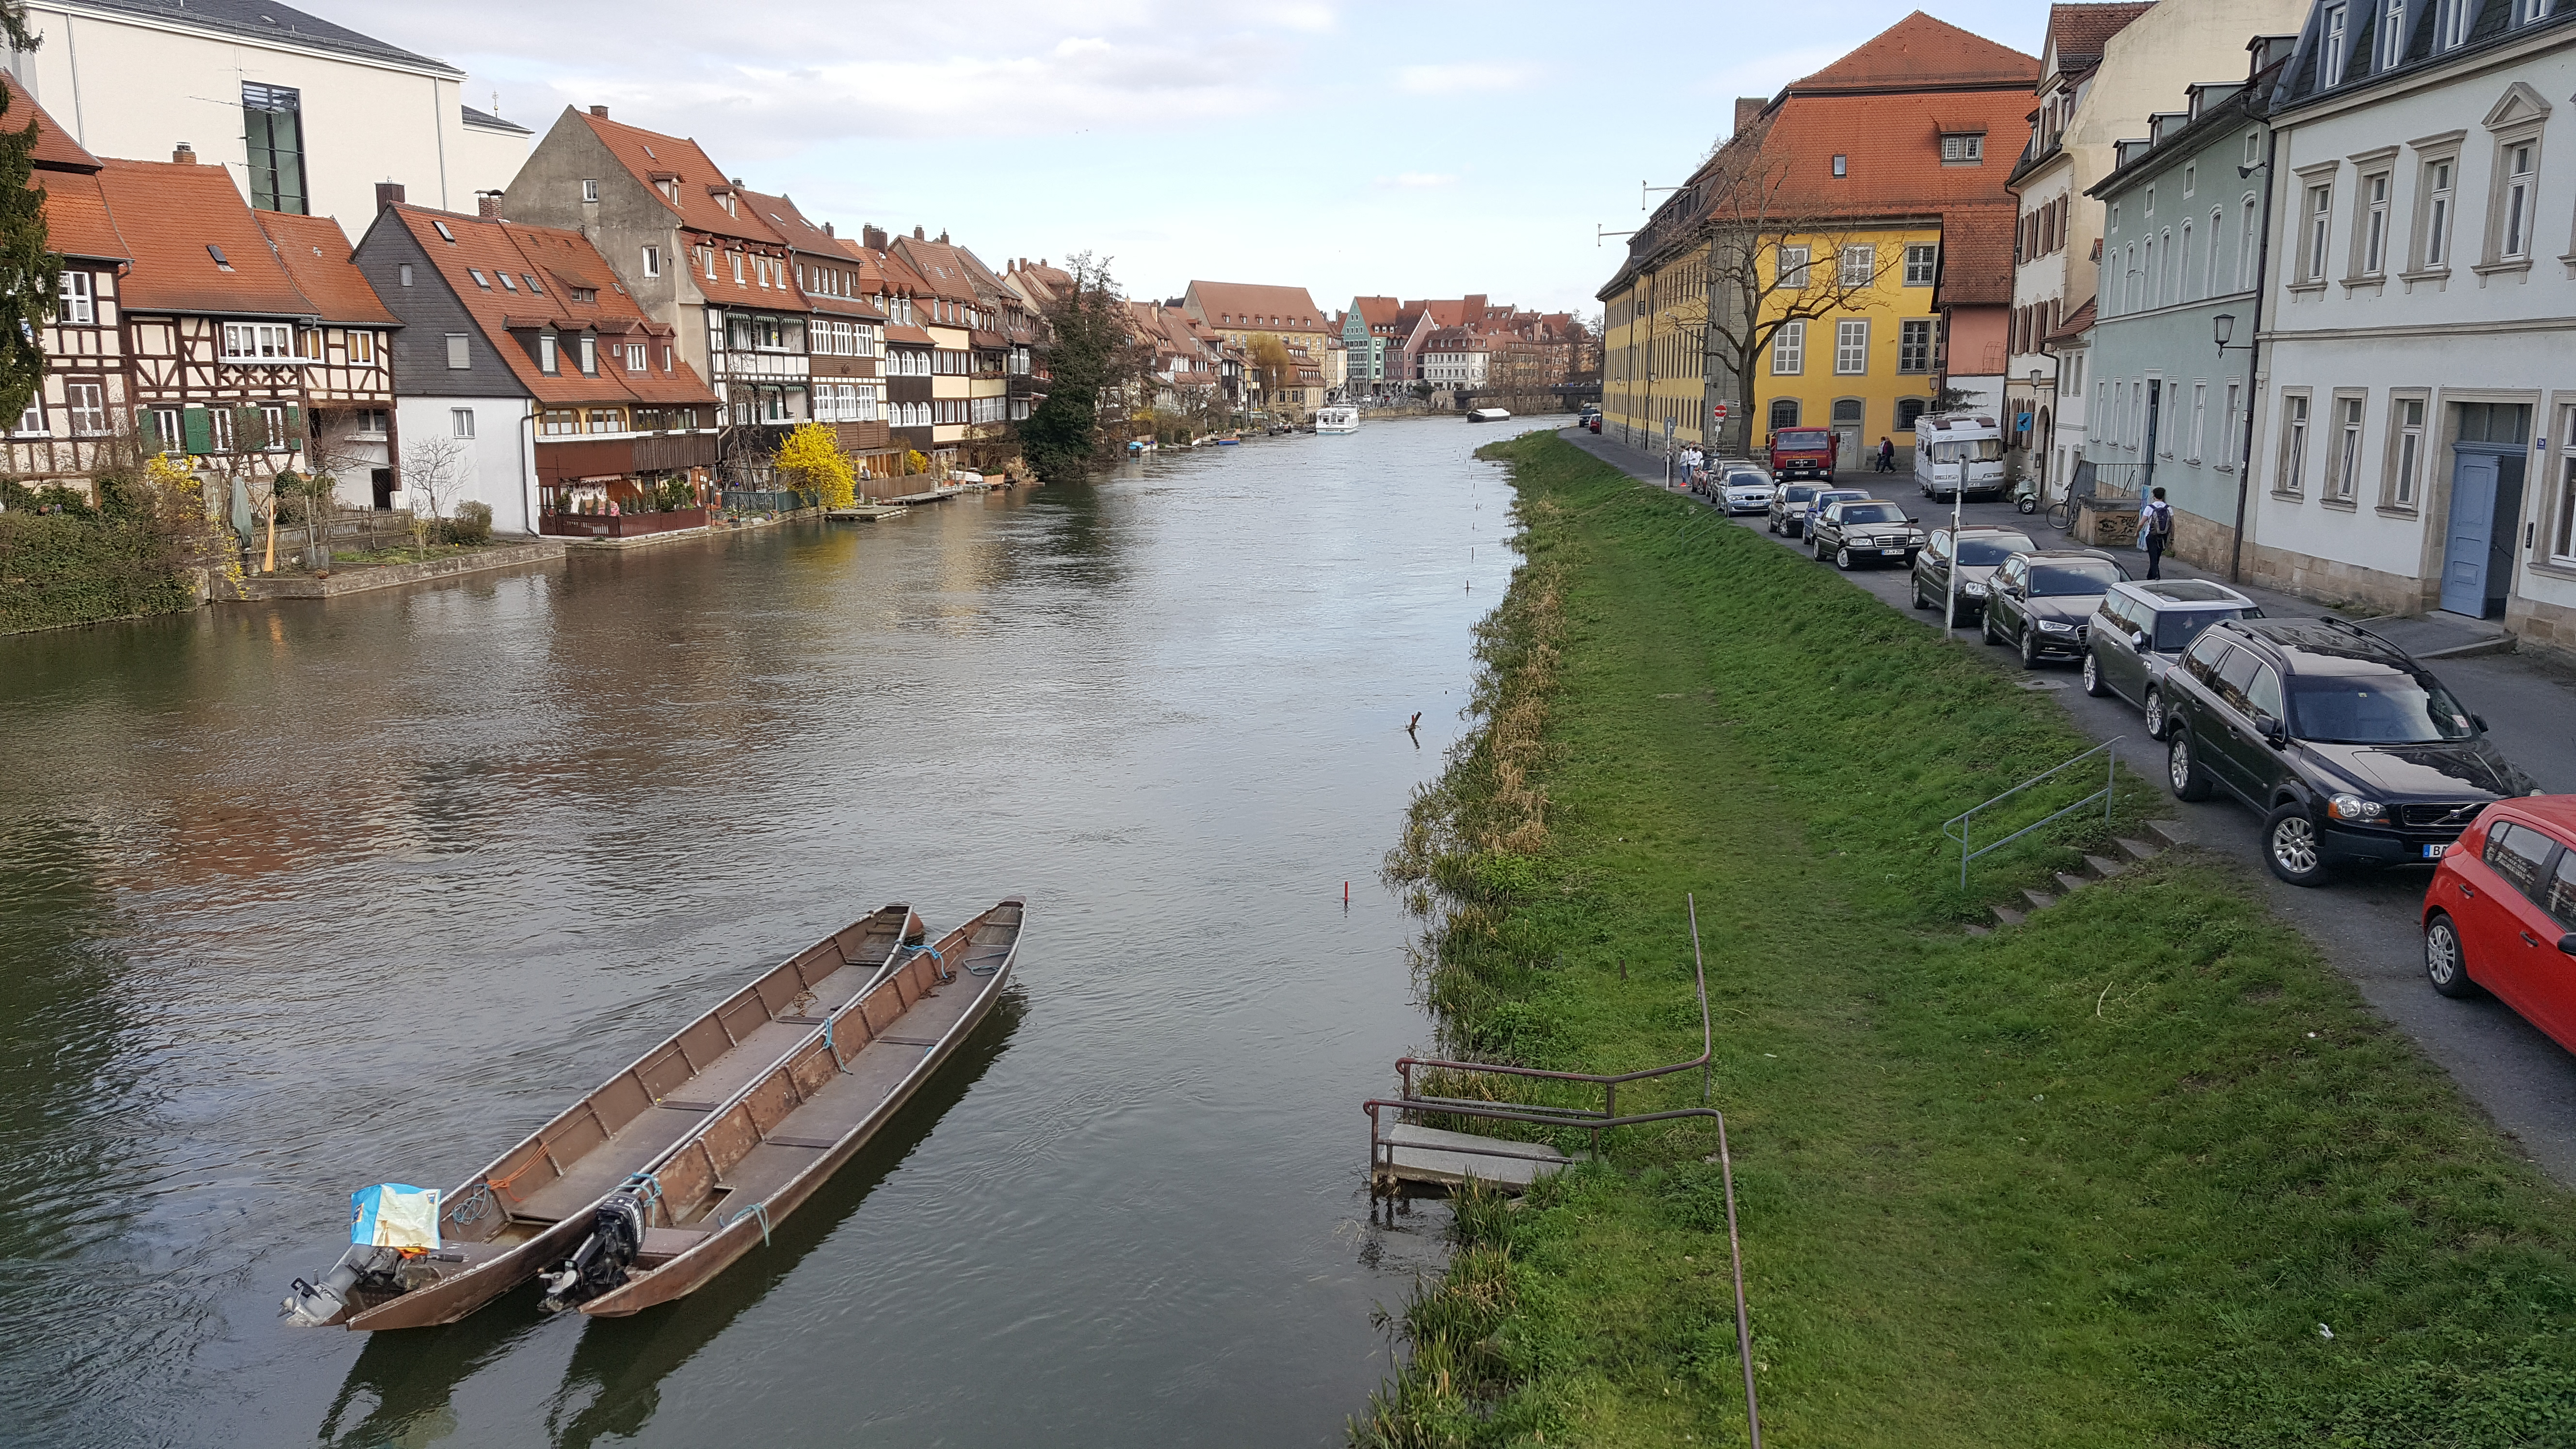 Bamberg Travel Guide: A Hidden Gem for German Beer Lovers